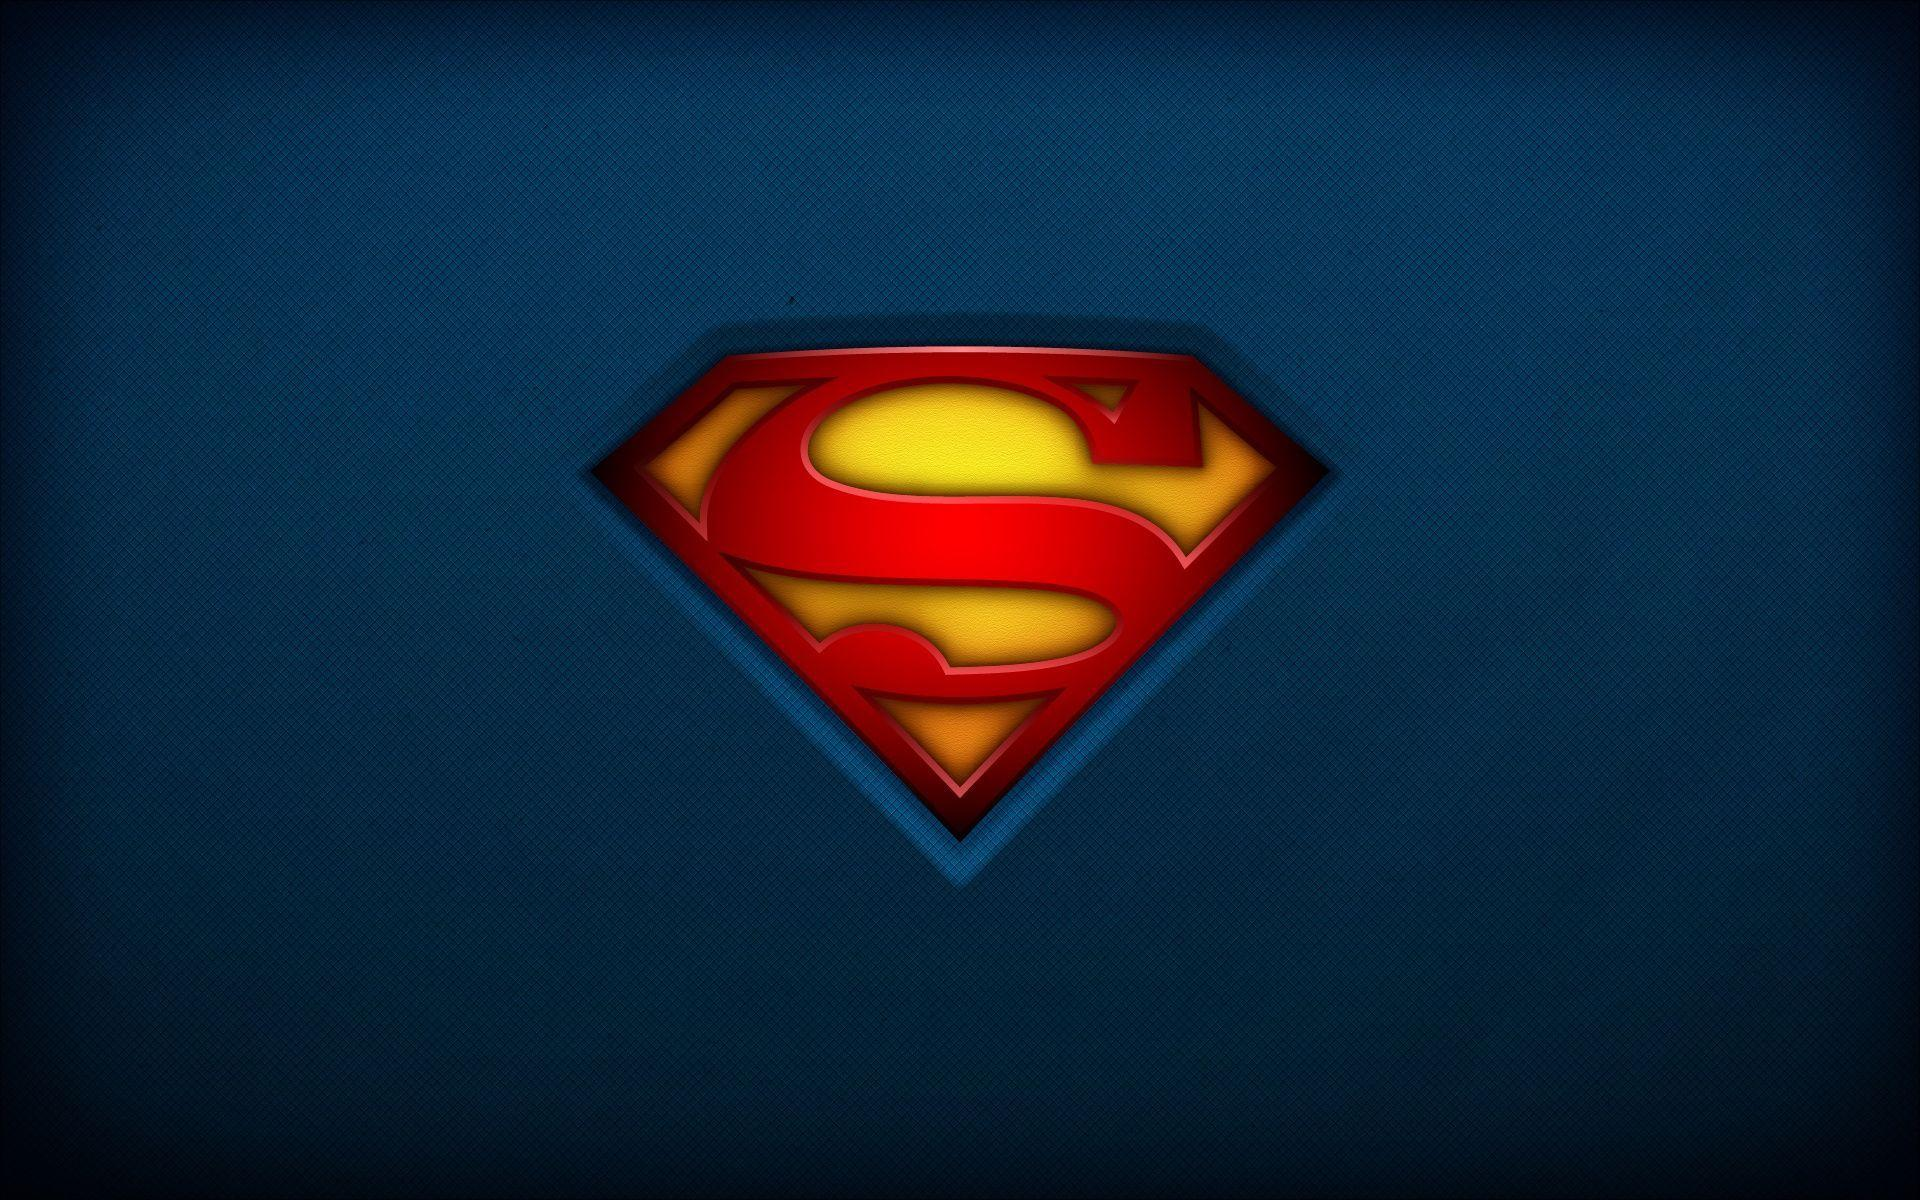 Wallpapers HD Superman